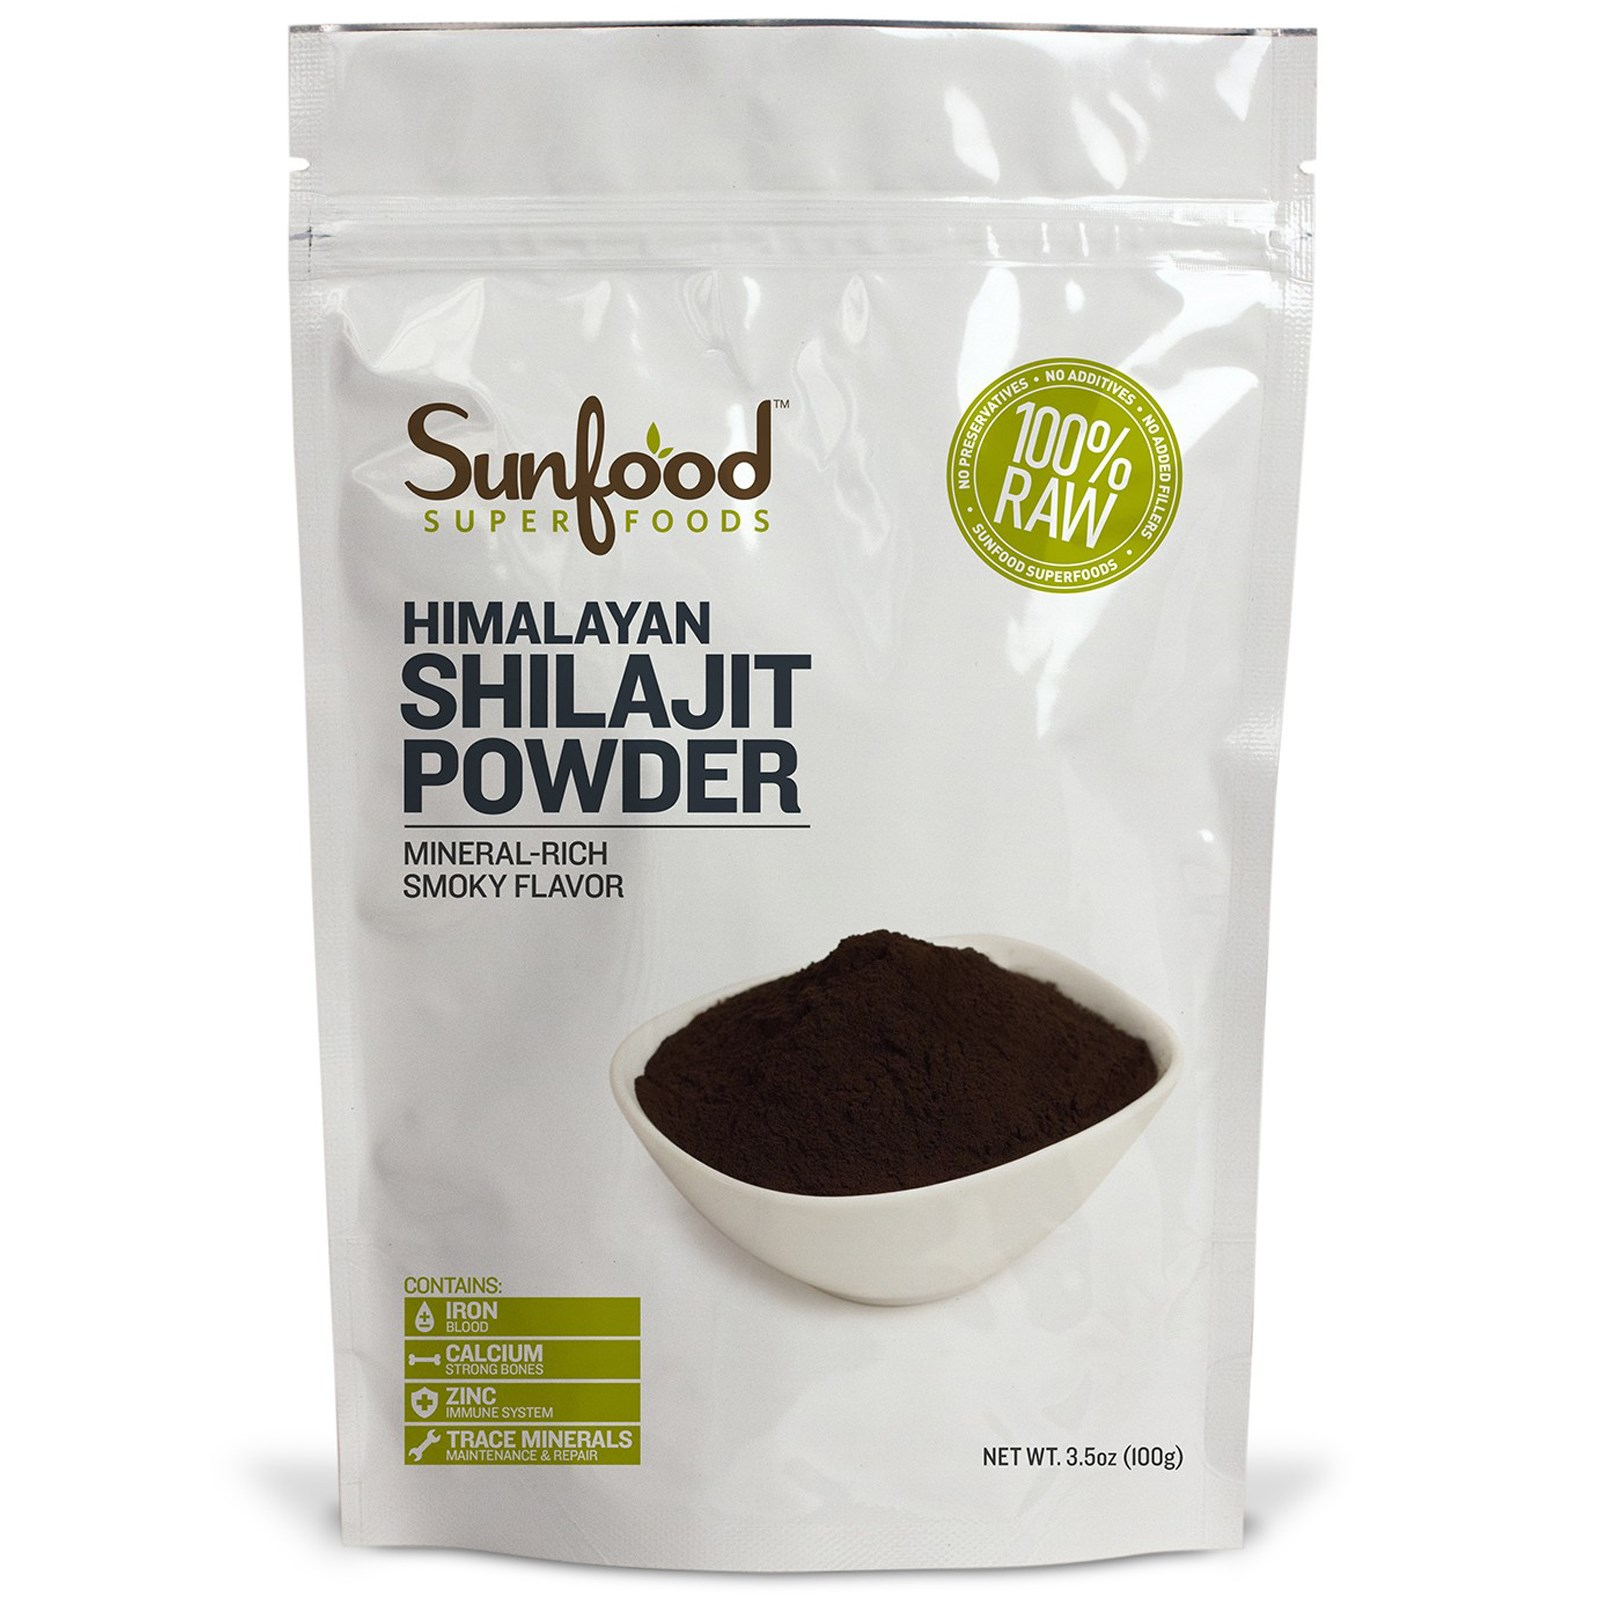 Sunfood Shilajit Powder Himalayan Xilaizhi Powder Original Unprocessed Vegetarian Relief Anxiety And Stress,Prolong Life